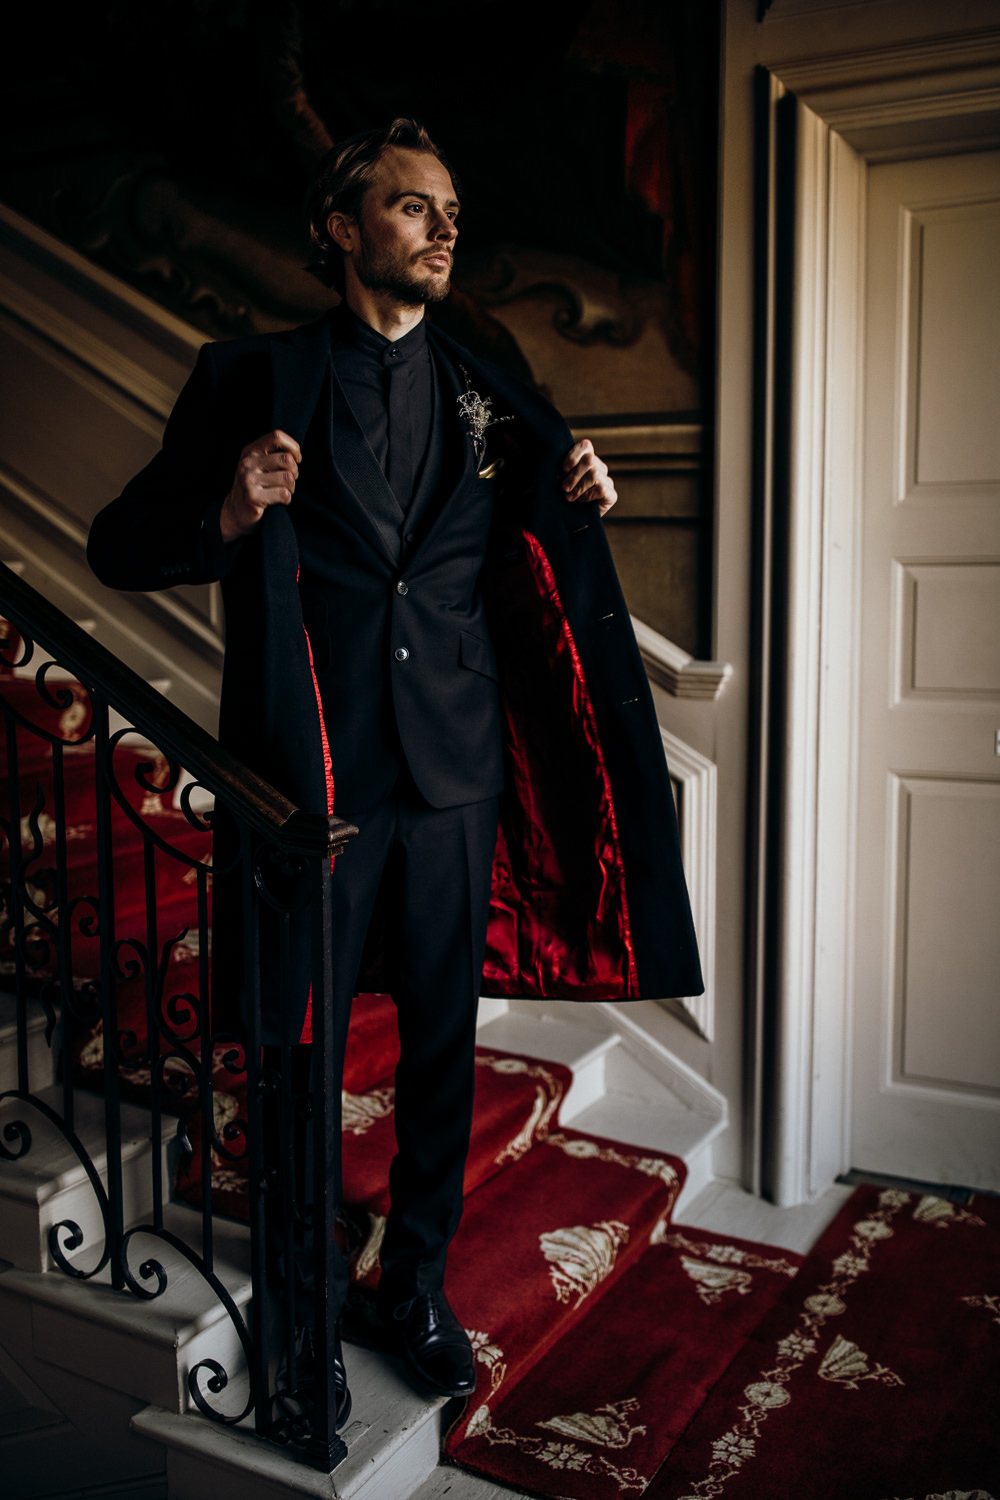 Groom Suit Black Waistcoat Tie Coat Red Lining Harry Potter Wedding Ideas Thyme Lane Photography